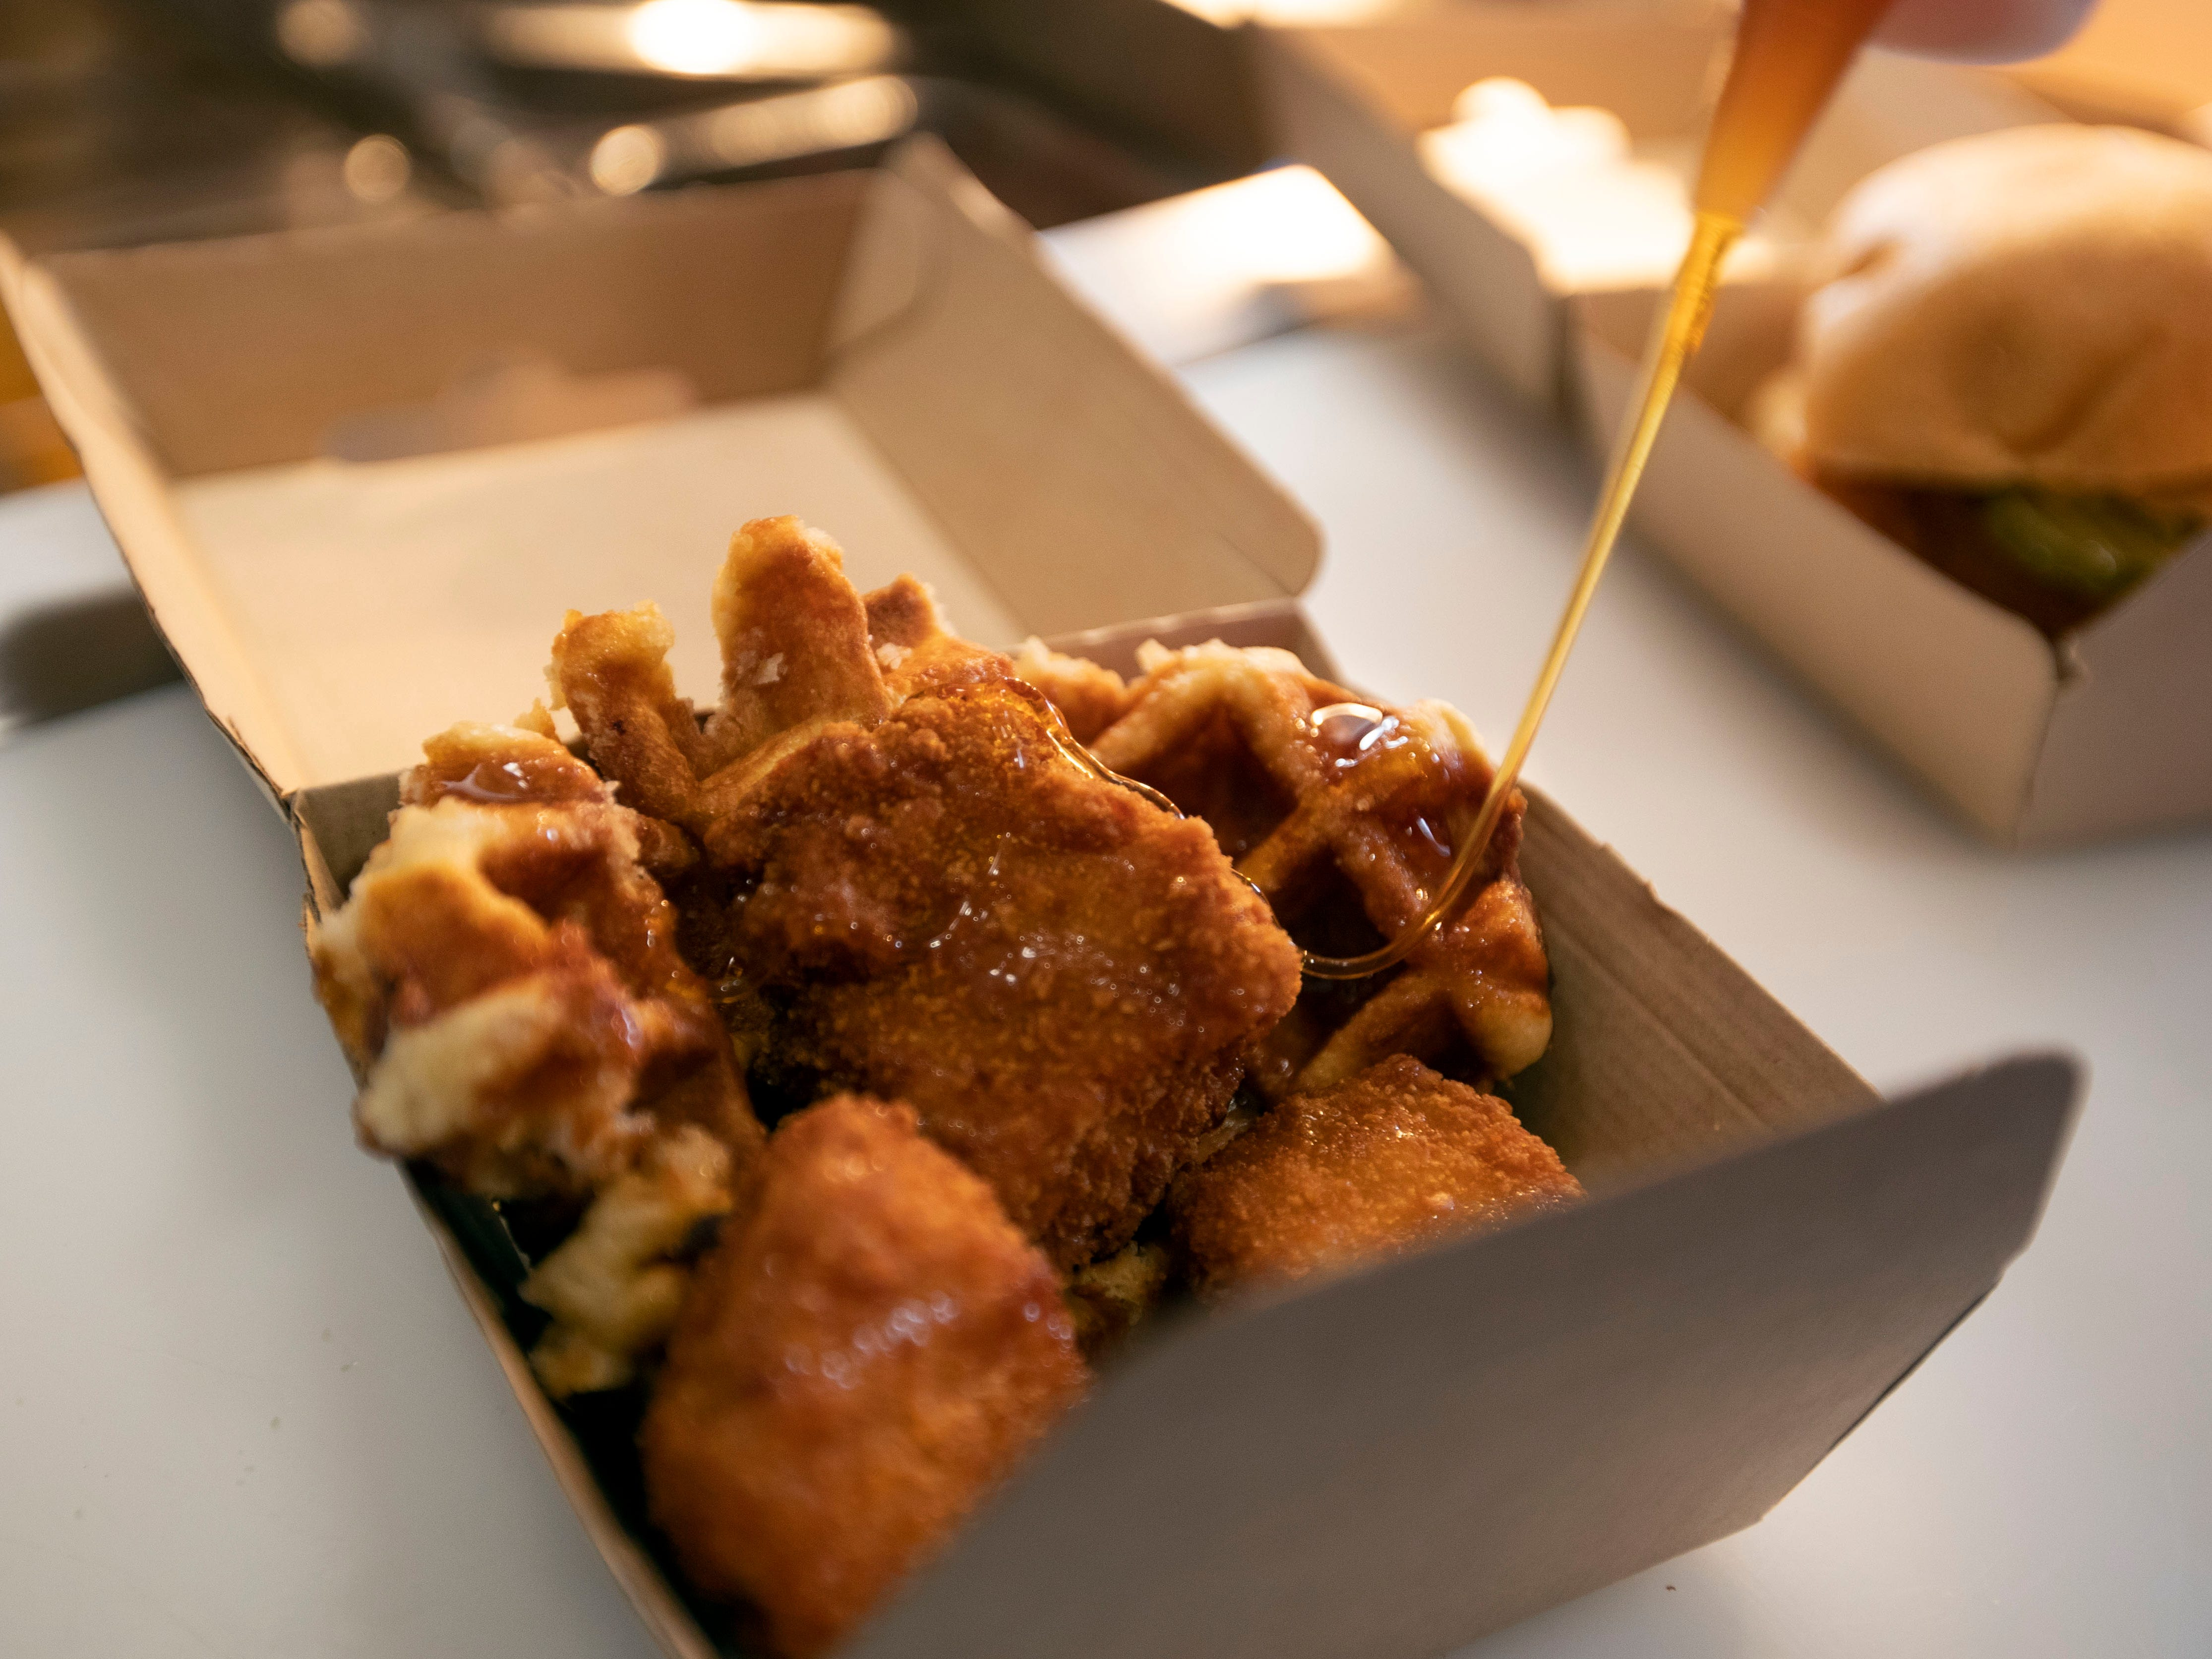 Rooster's Chicken Shack menu features chicken and waffles, a fried filet, waffle bun and maple syrup.